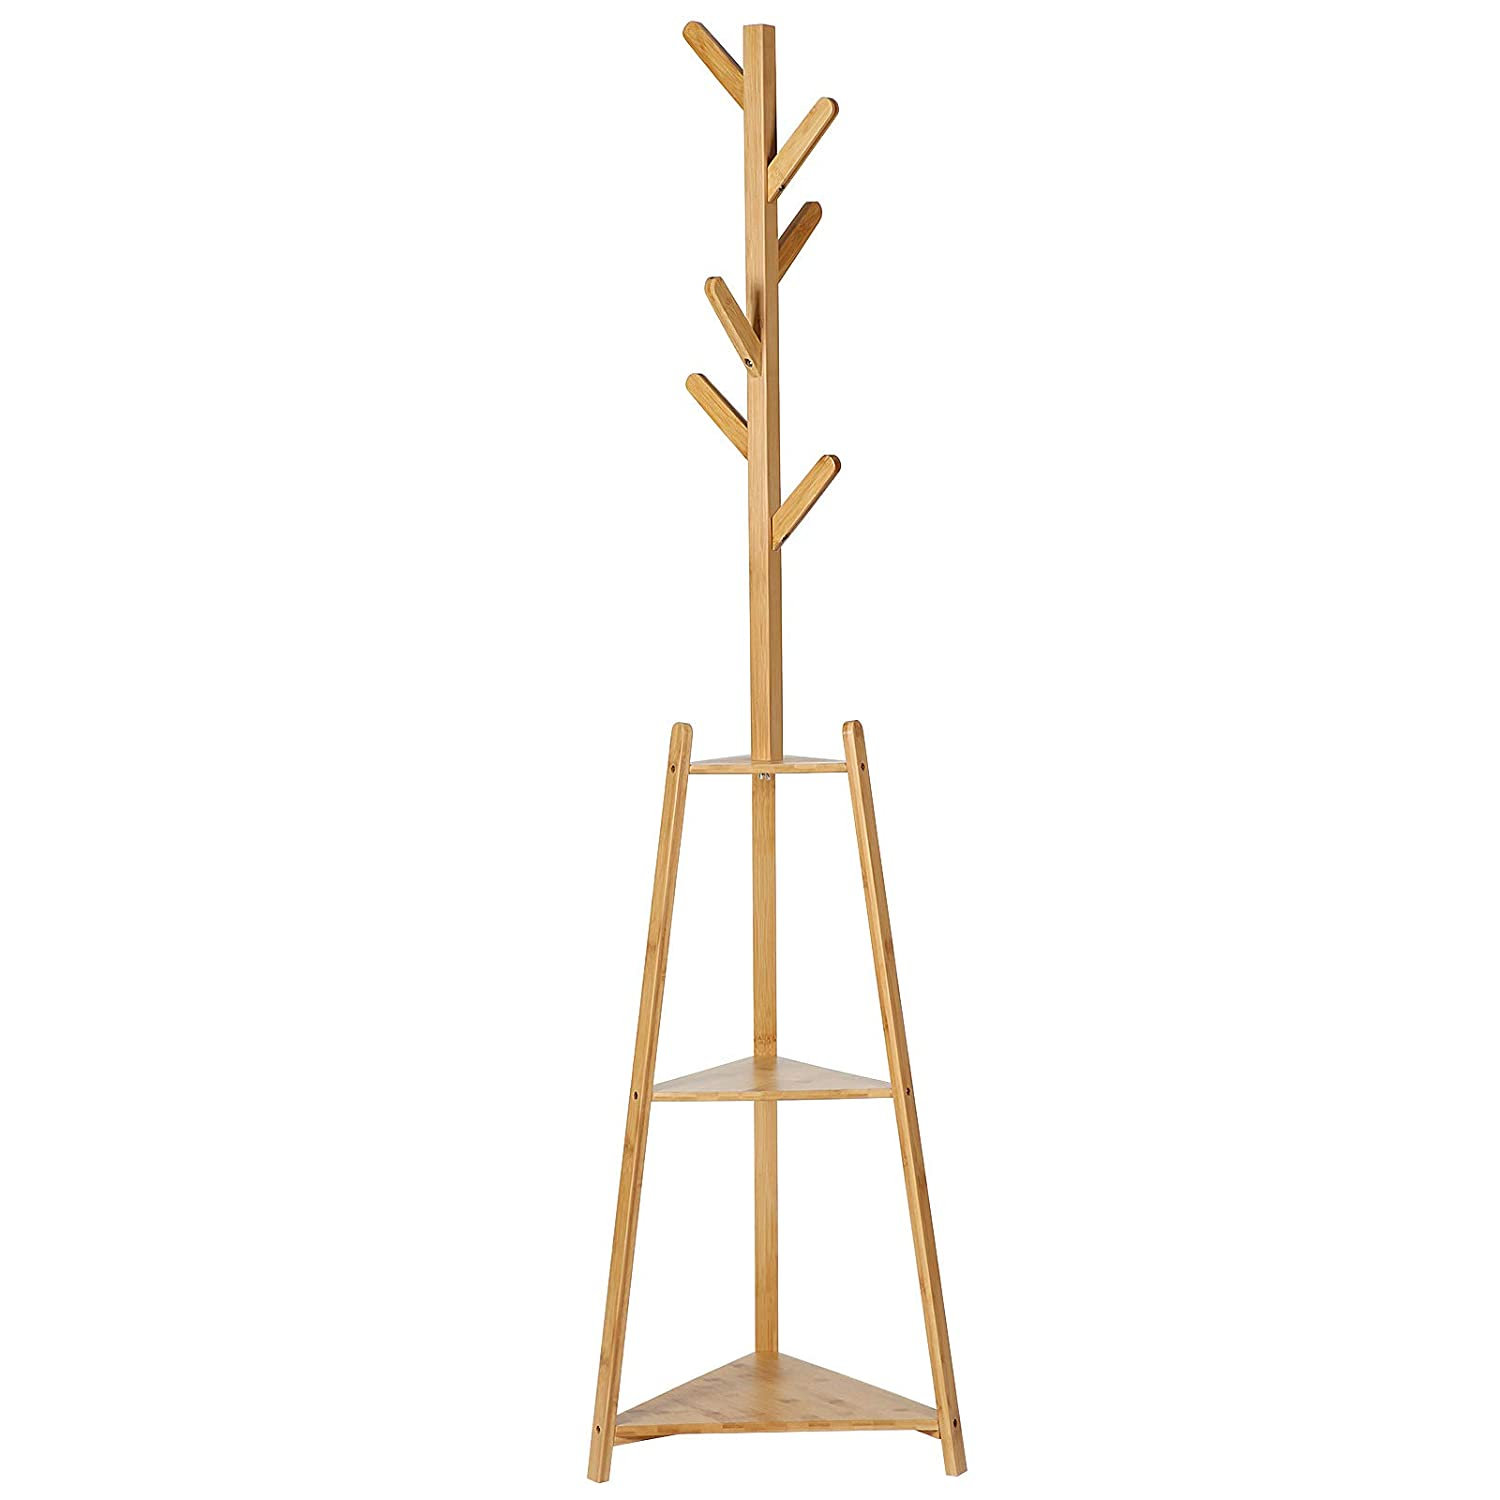 SONGMICS Bamboo Coat Rack Free Standing with 2 Storage Shelves, Coat Tree with 6 Hooks, Hall Tree Enterway Coat Holder for Coat, Hat, Clothes, Scarves, Natural